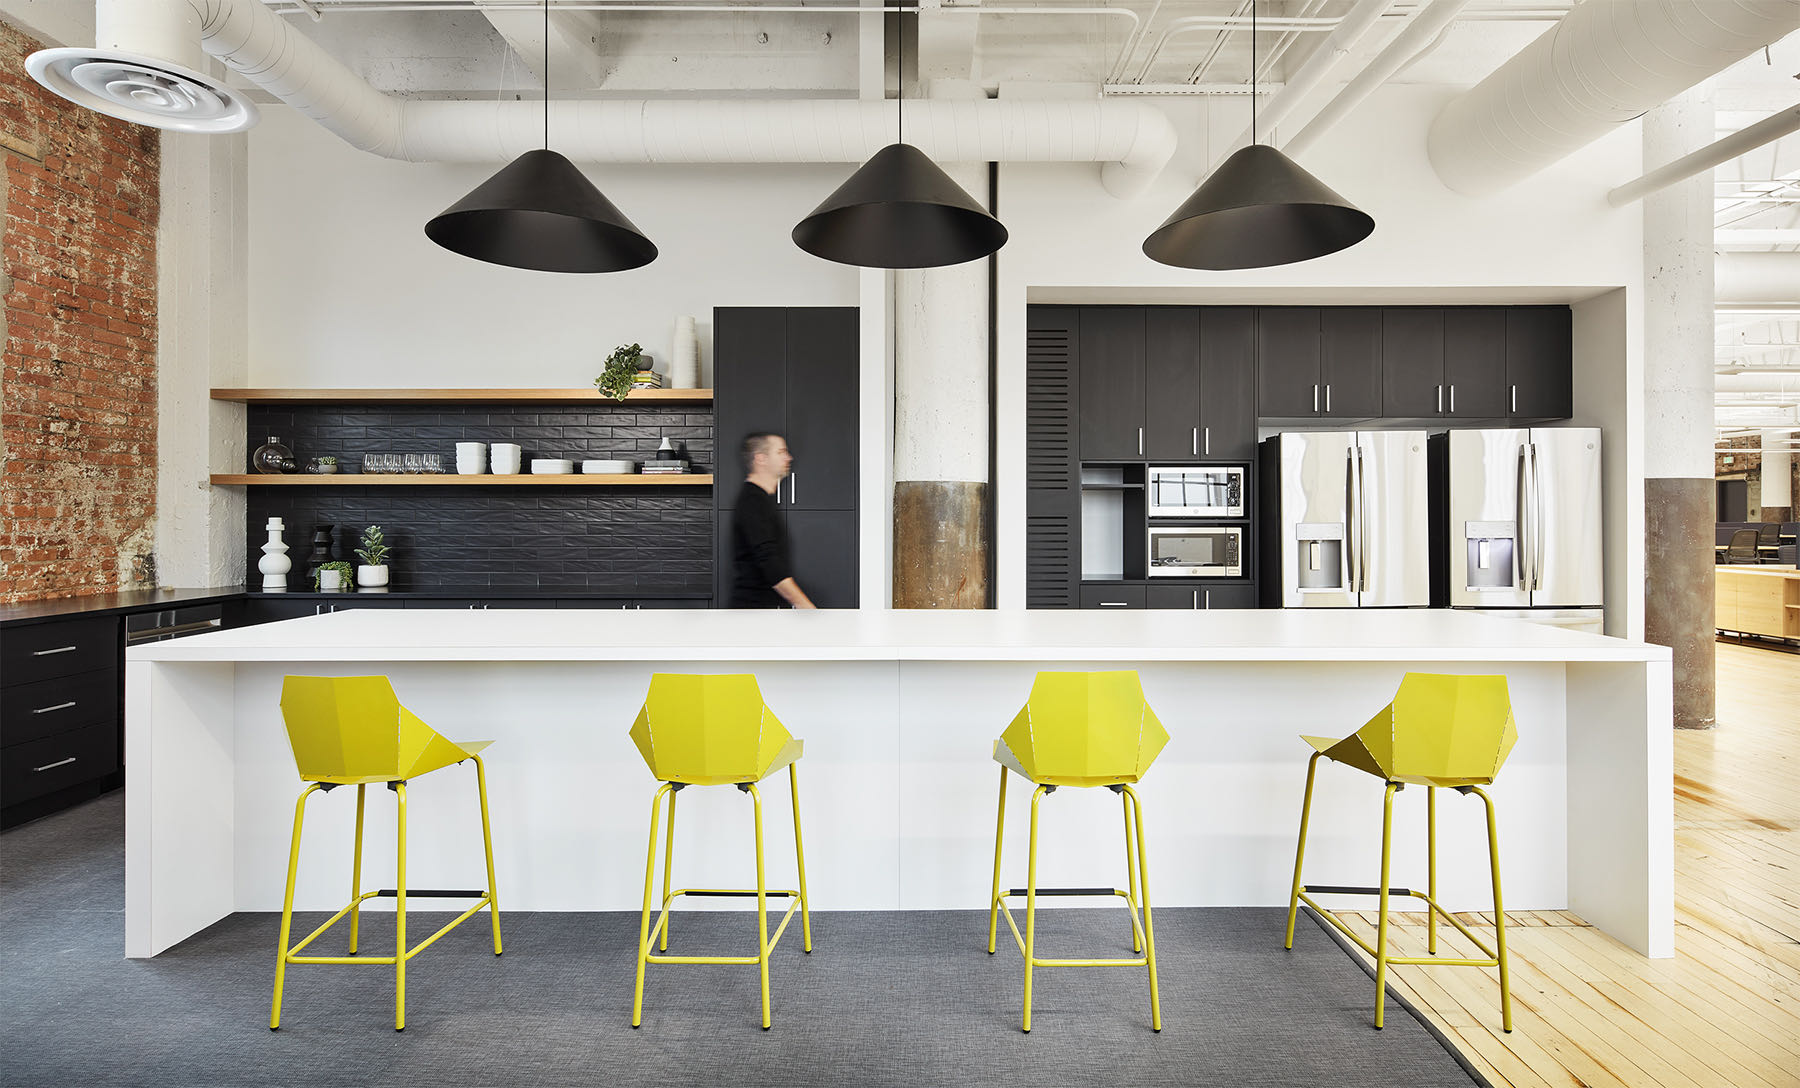 A Look Inside Loose Wiles's Office Suites In Minneapolis